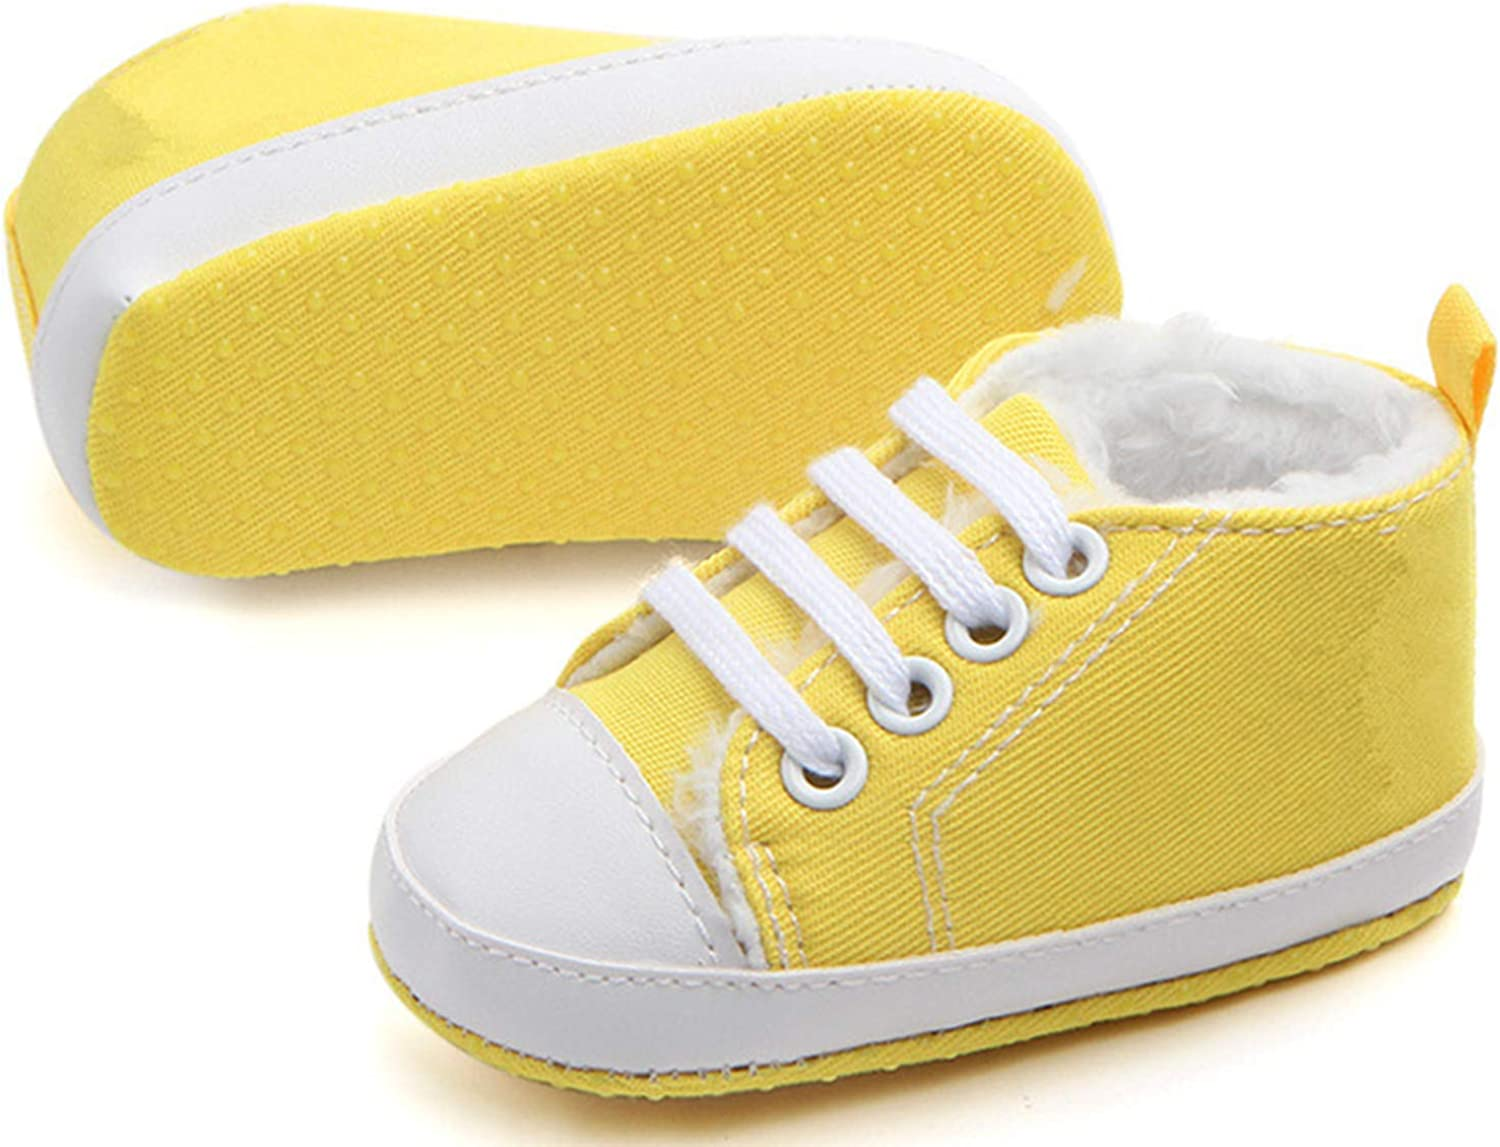 Newborn Infant Baby Girls Canvas Soft Sole Anti-Slip Sneakers Cute Cloth Shoes